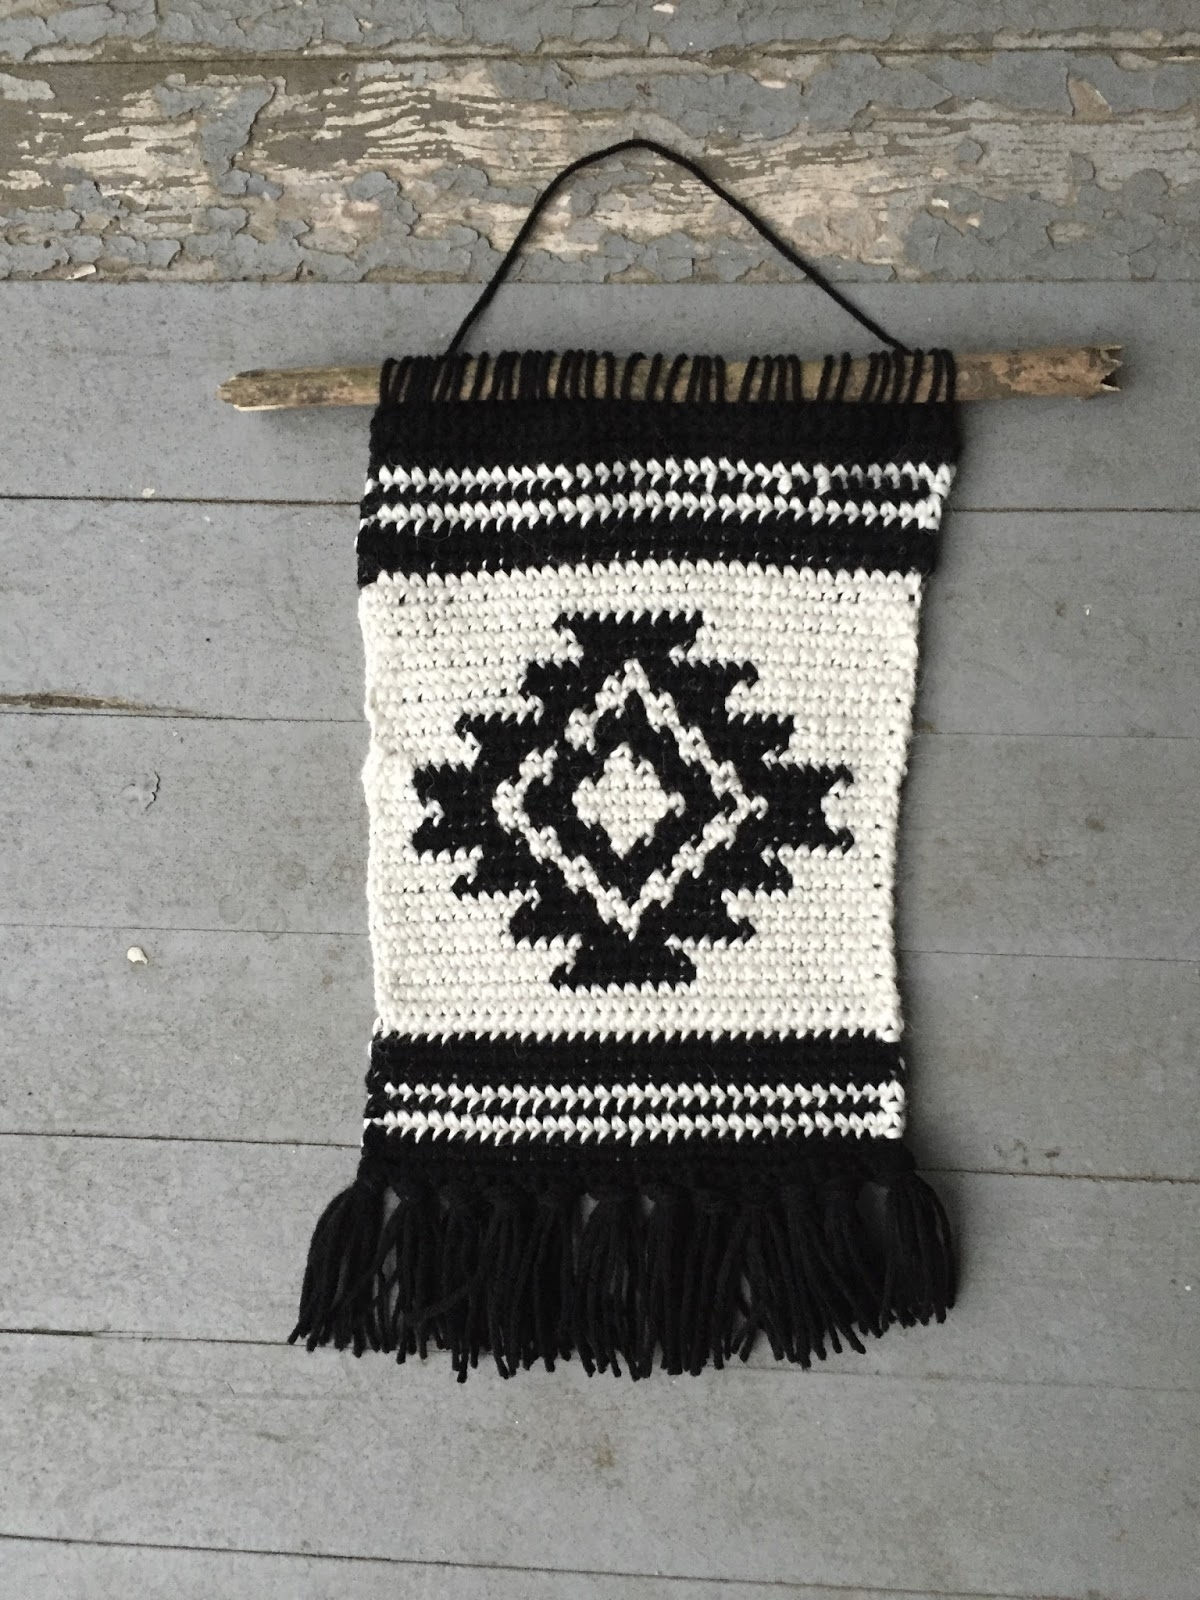 Shirley And Eadie: Crochet Wall Hanging Tutorial Pertaining To 2018 Crochet Wall Art (View 20 of 20)